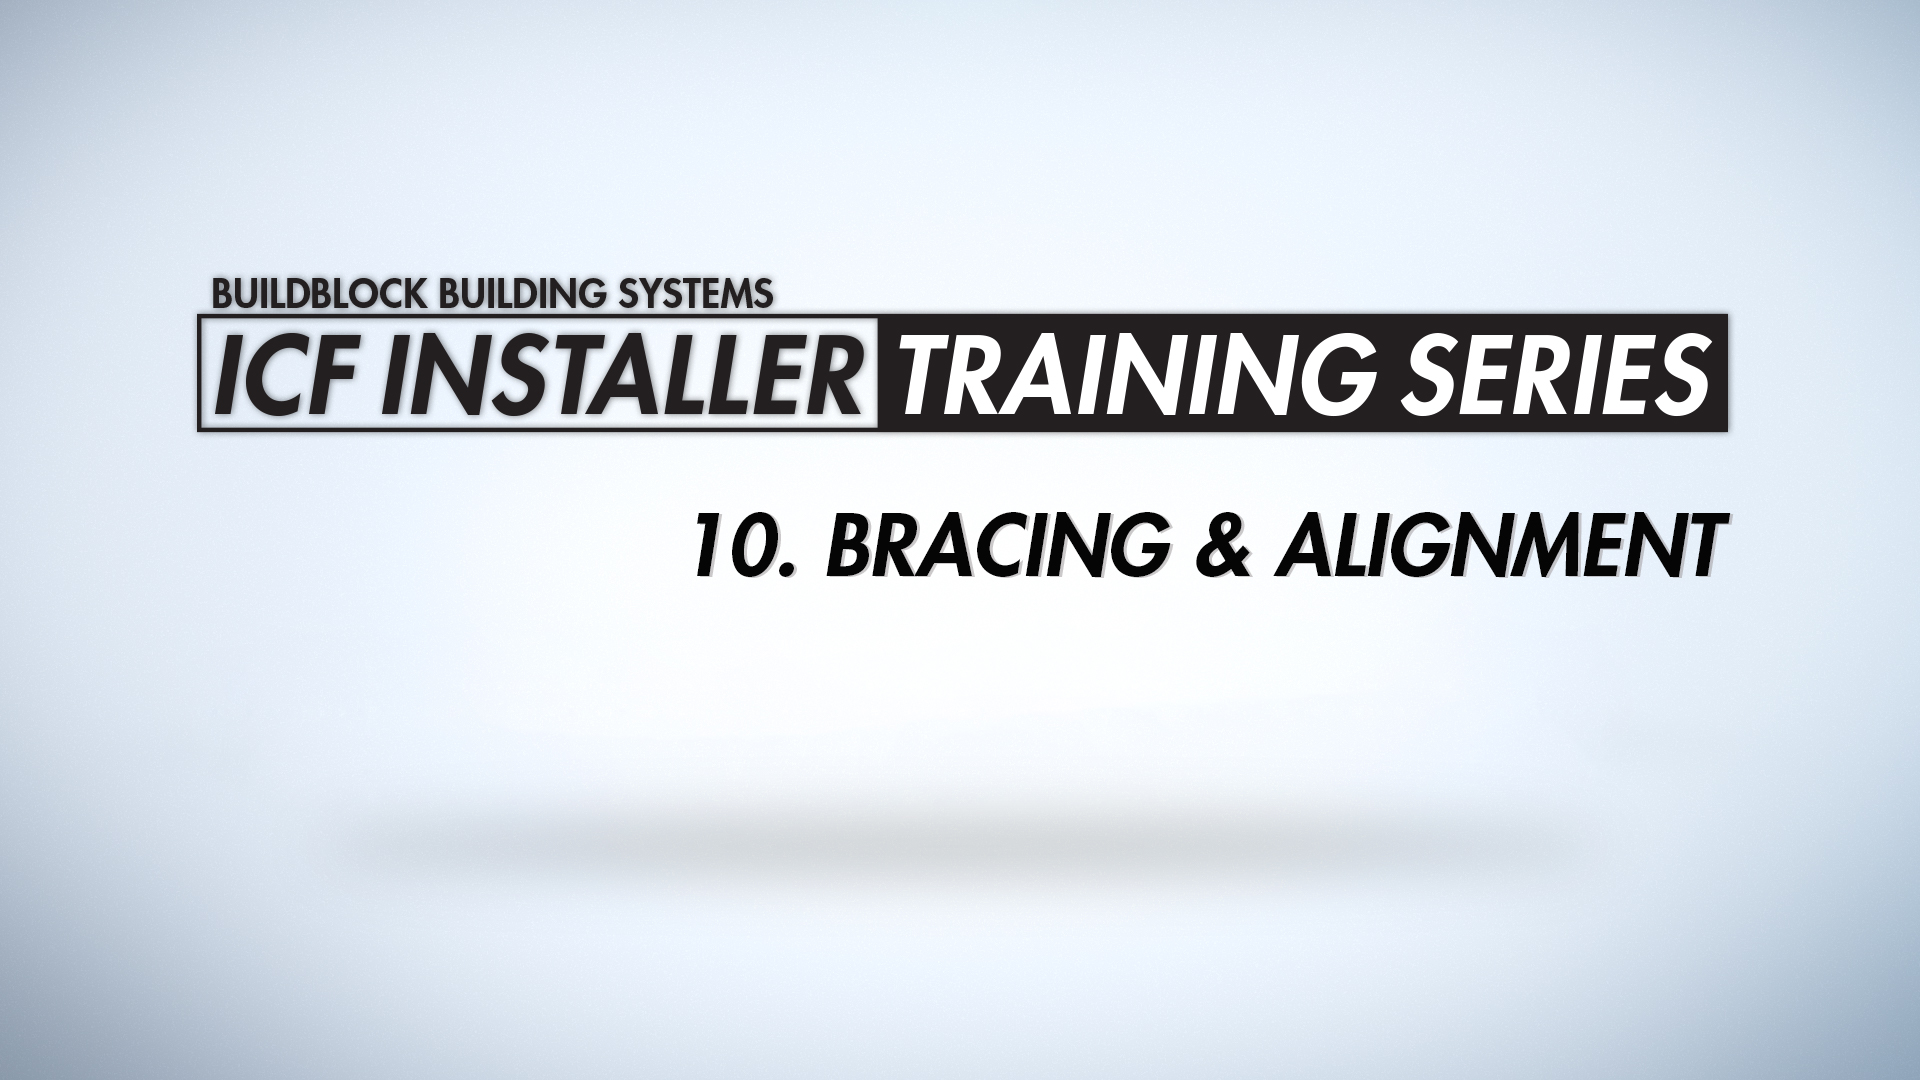 BuildBlock ICF Installer Training Series: Bracing & Alignment